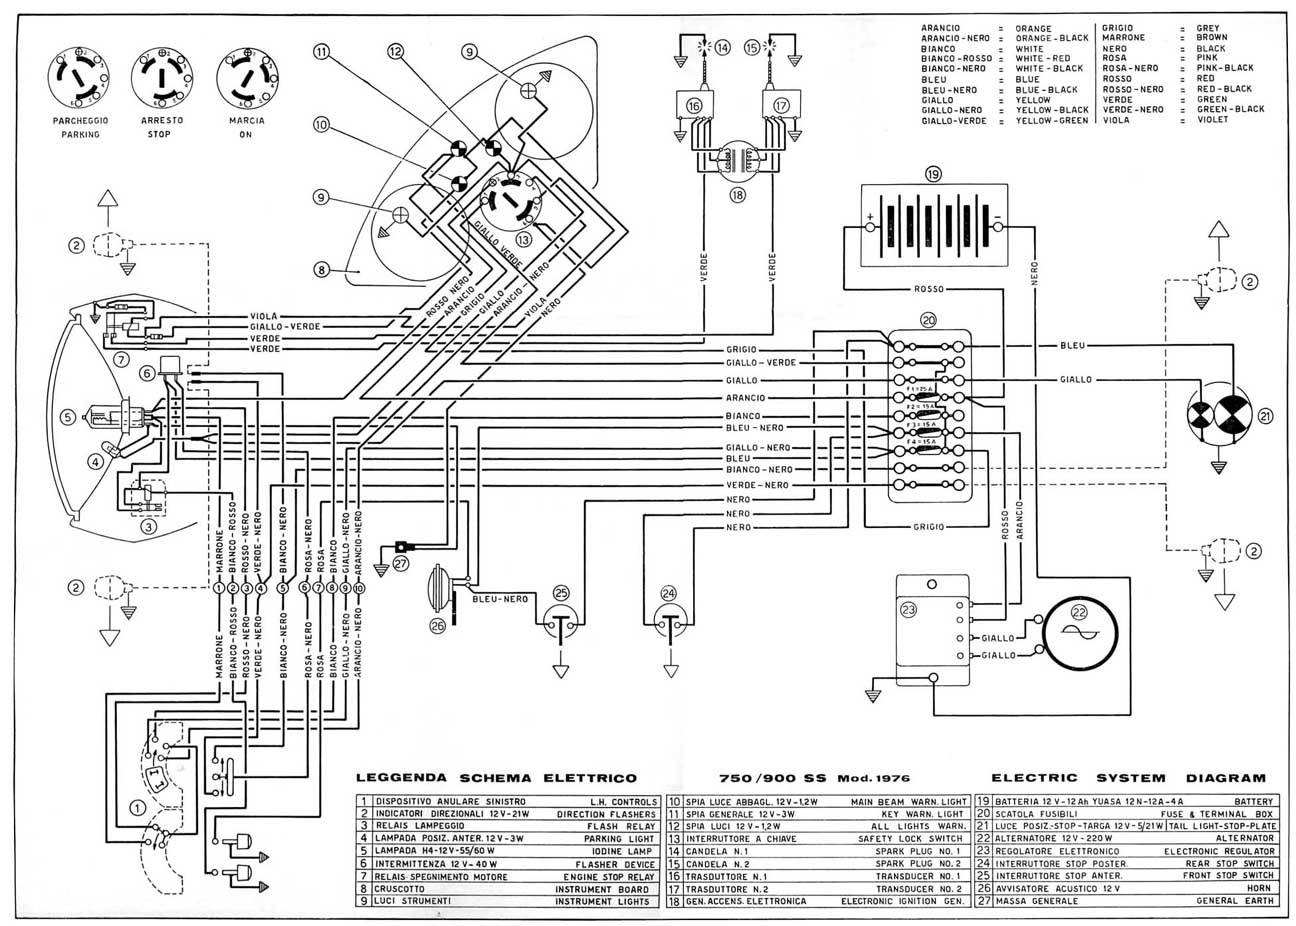 wiring diagram 2002 ducati